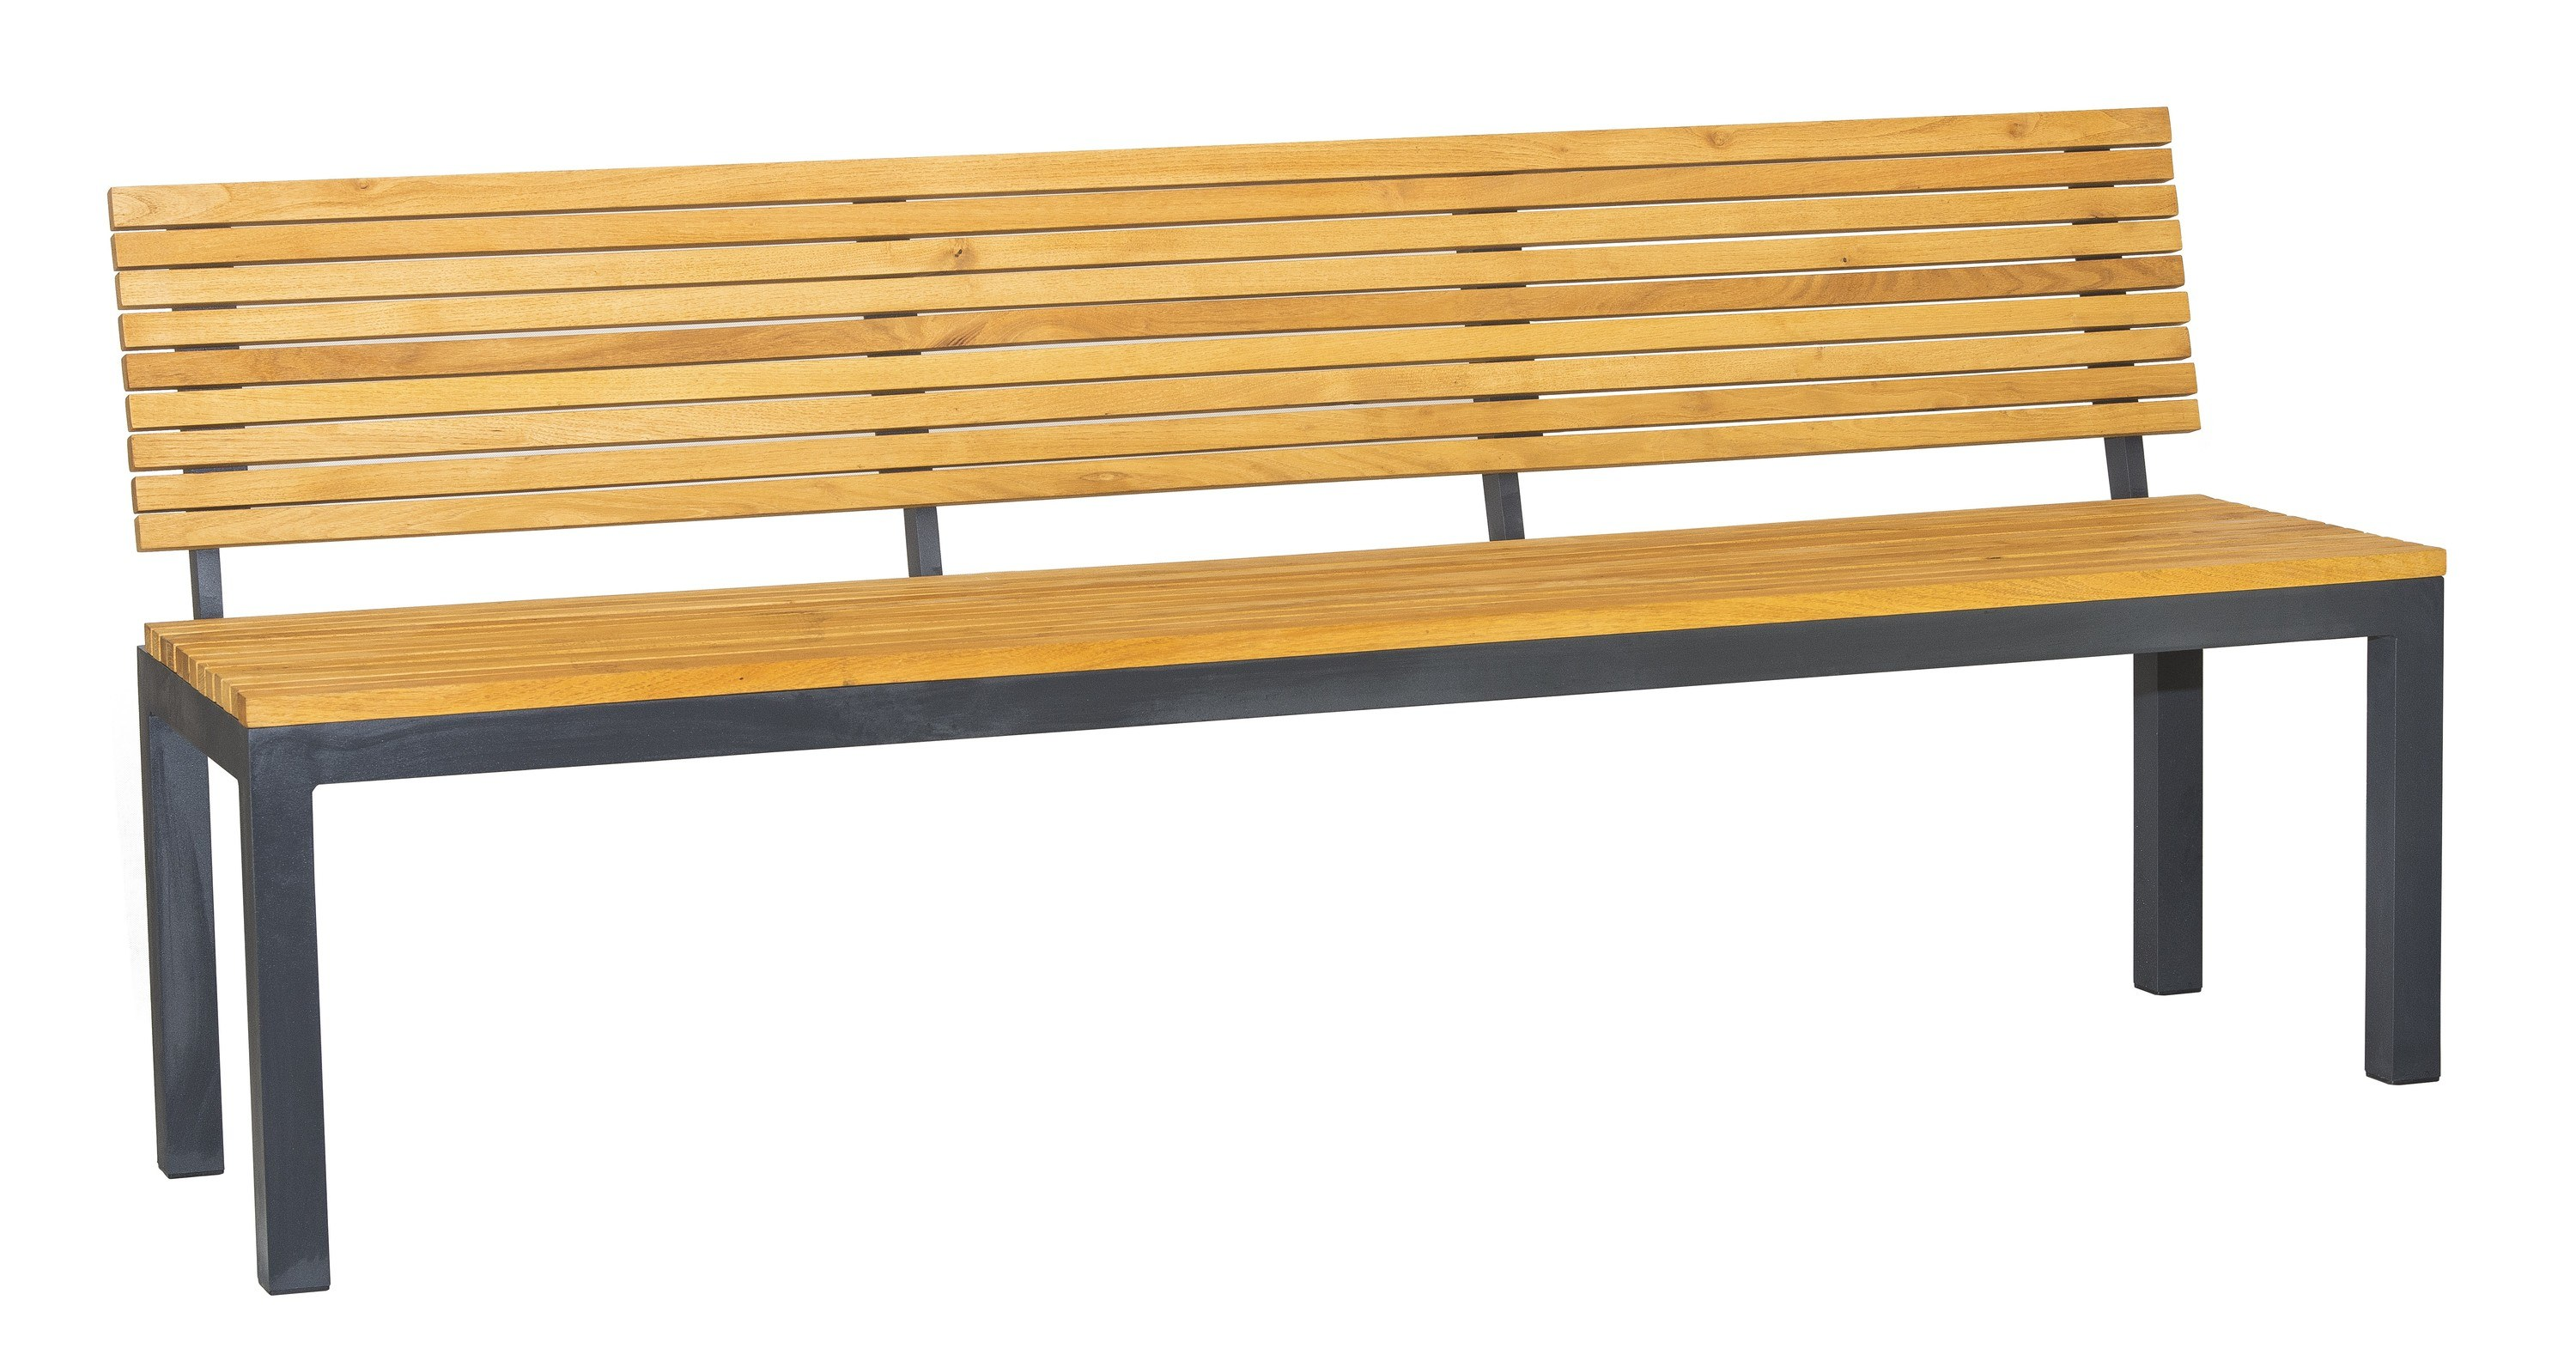 <p>Outdoor Furniture – Metal & Wooden Dining Collection – Moderno Bench.</p> <p> </p> <p>Moderno Furniture – Bench with hardwood seat armrests and backrest with narrow strips and symmetrical design.</p> <p> </p> <p>Ideally suited for either indoor or outdoor relaxed dining location in pubs or restaurants or more intimate café bistro al fresco area</p>